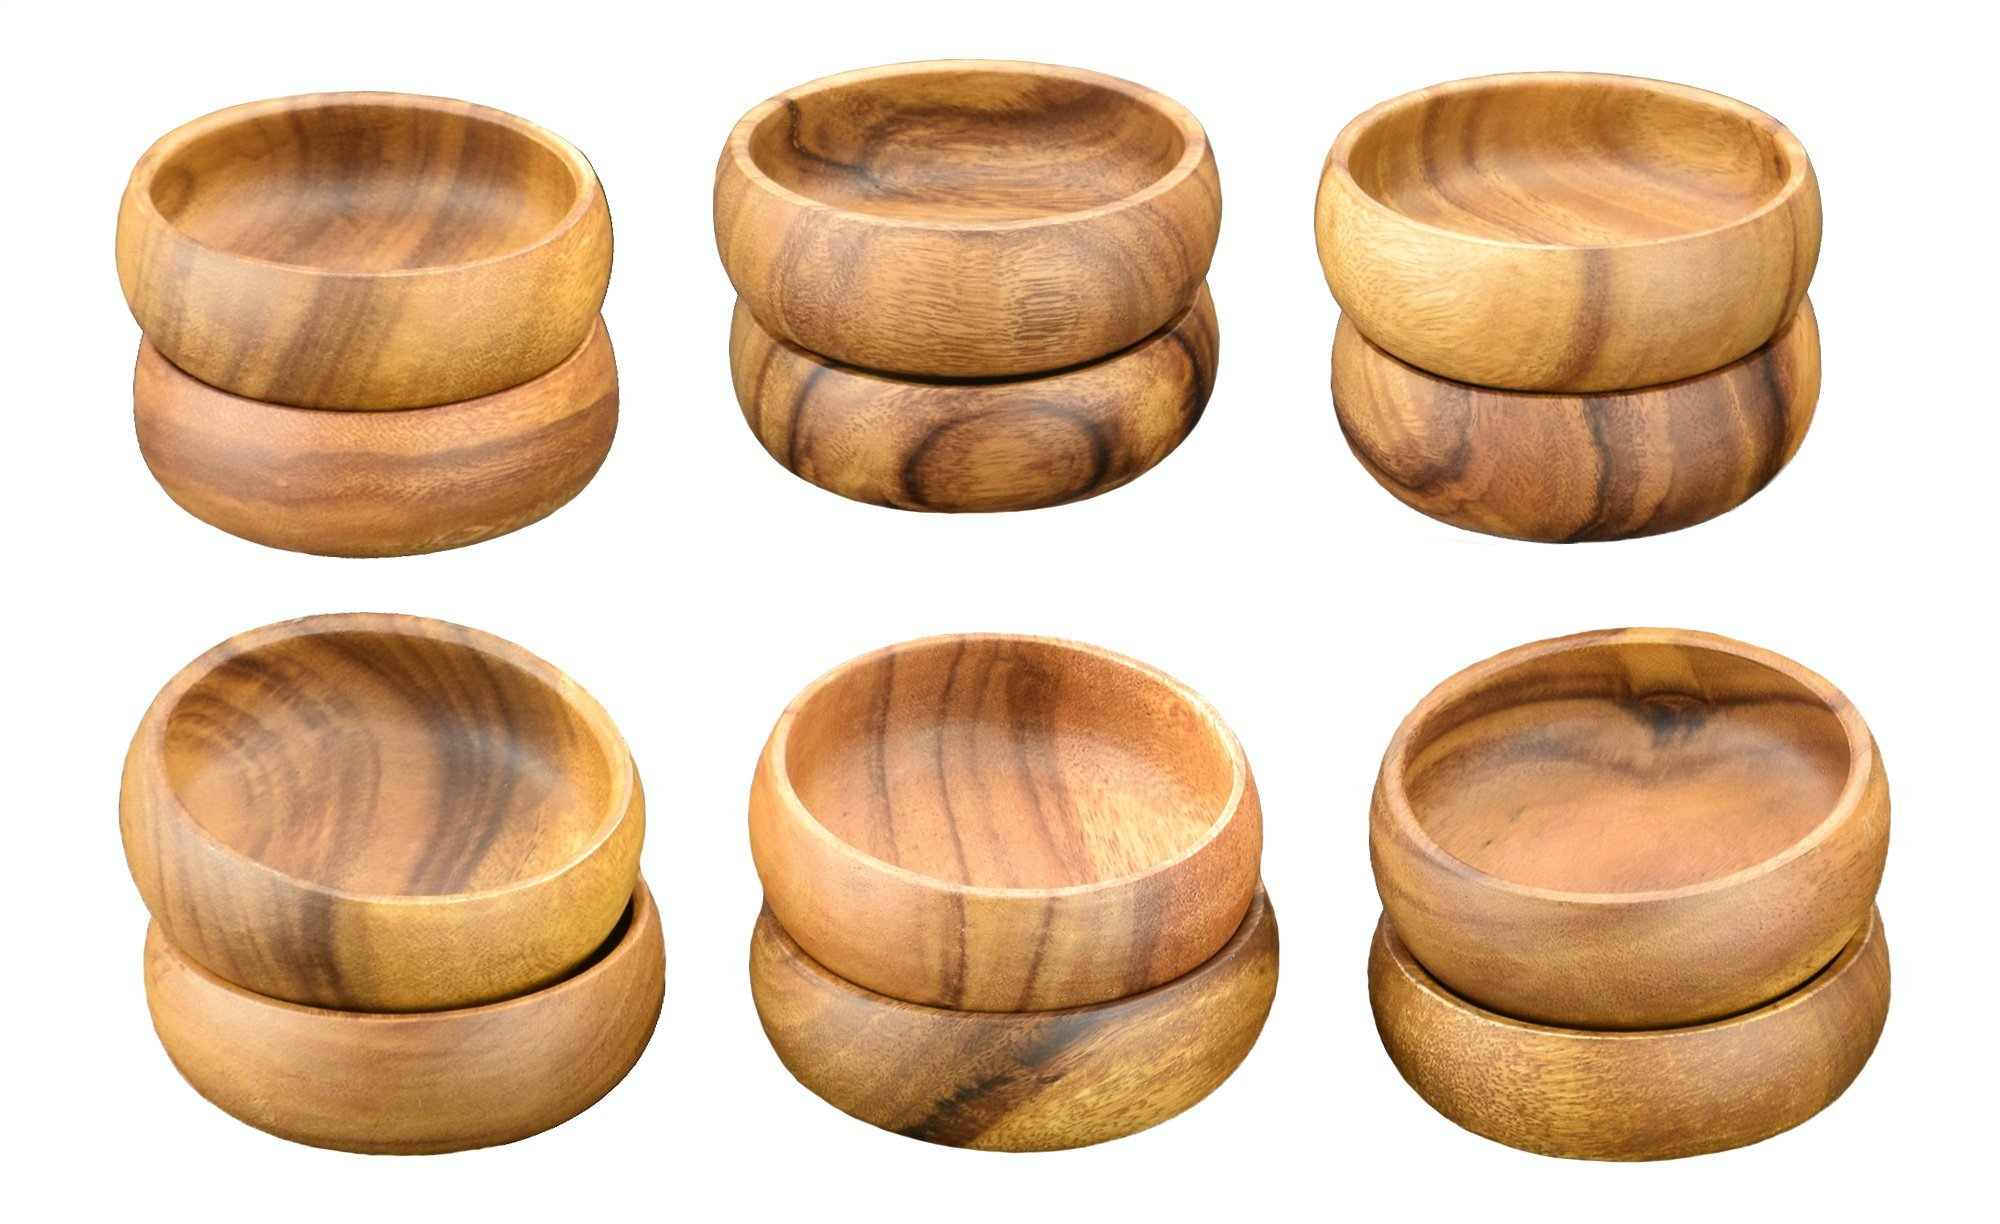 Acaciaware Acacia Wood Round Dipping Nut Bowls, Sushi Soy Sauce Bowls, 4-inch Diameter by 1.5-inch Height, Set of 12